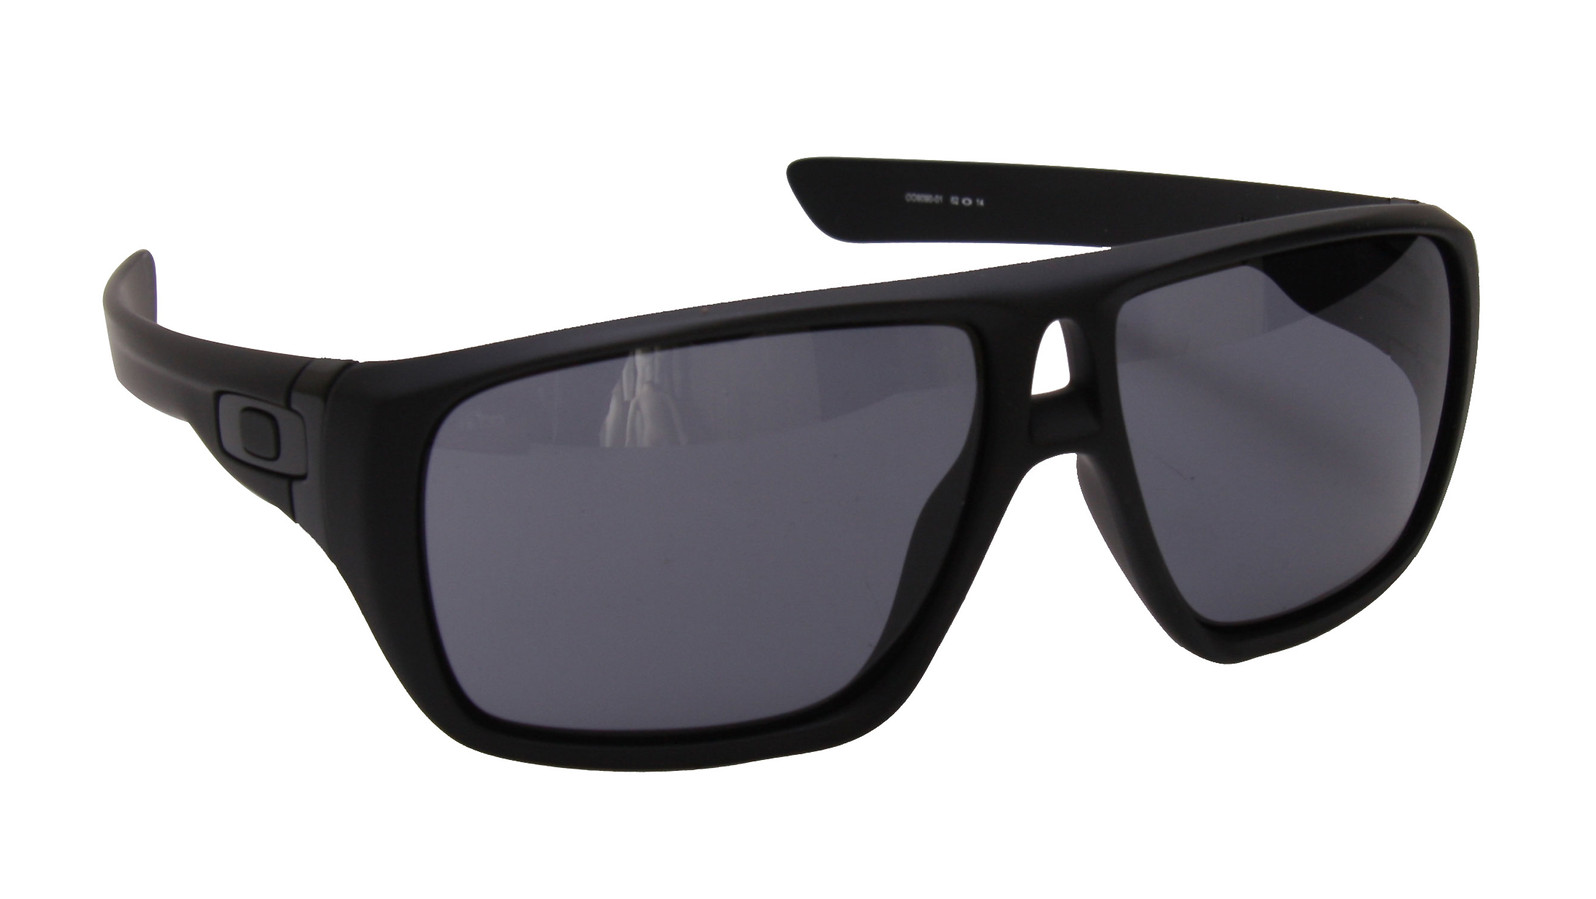 oakley dispatch sunglasses matte black  oakley dispatch sunglasses matte black/grey lens oakley dispatch sngls blkgry